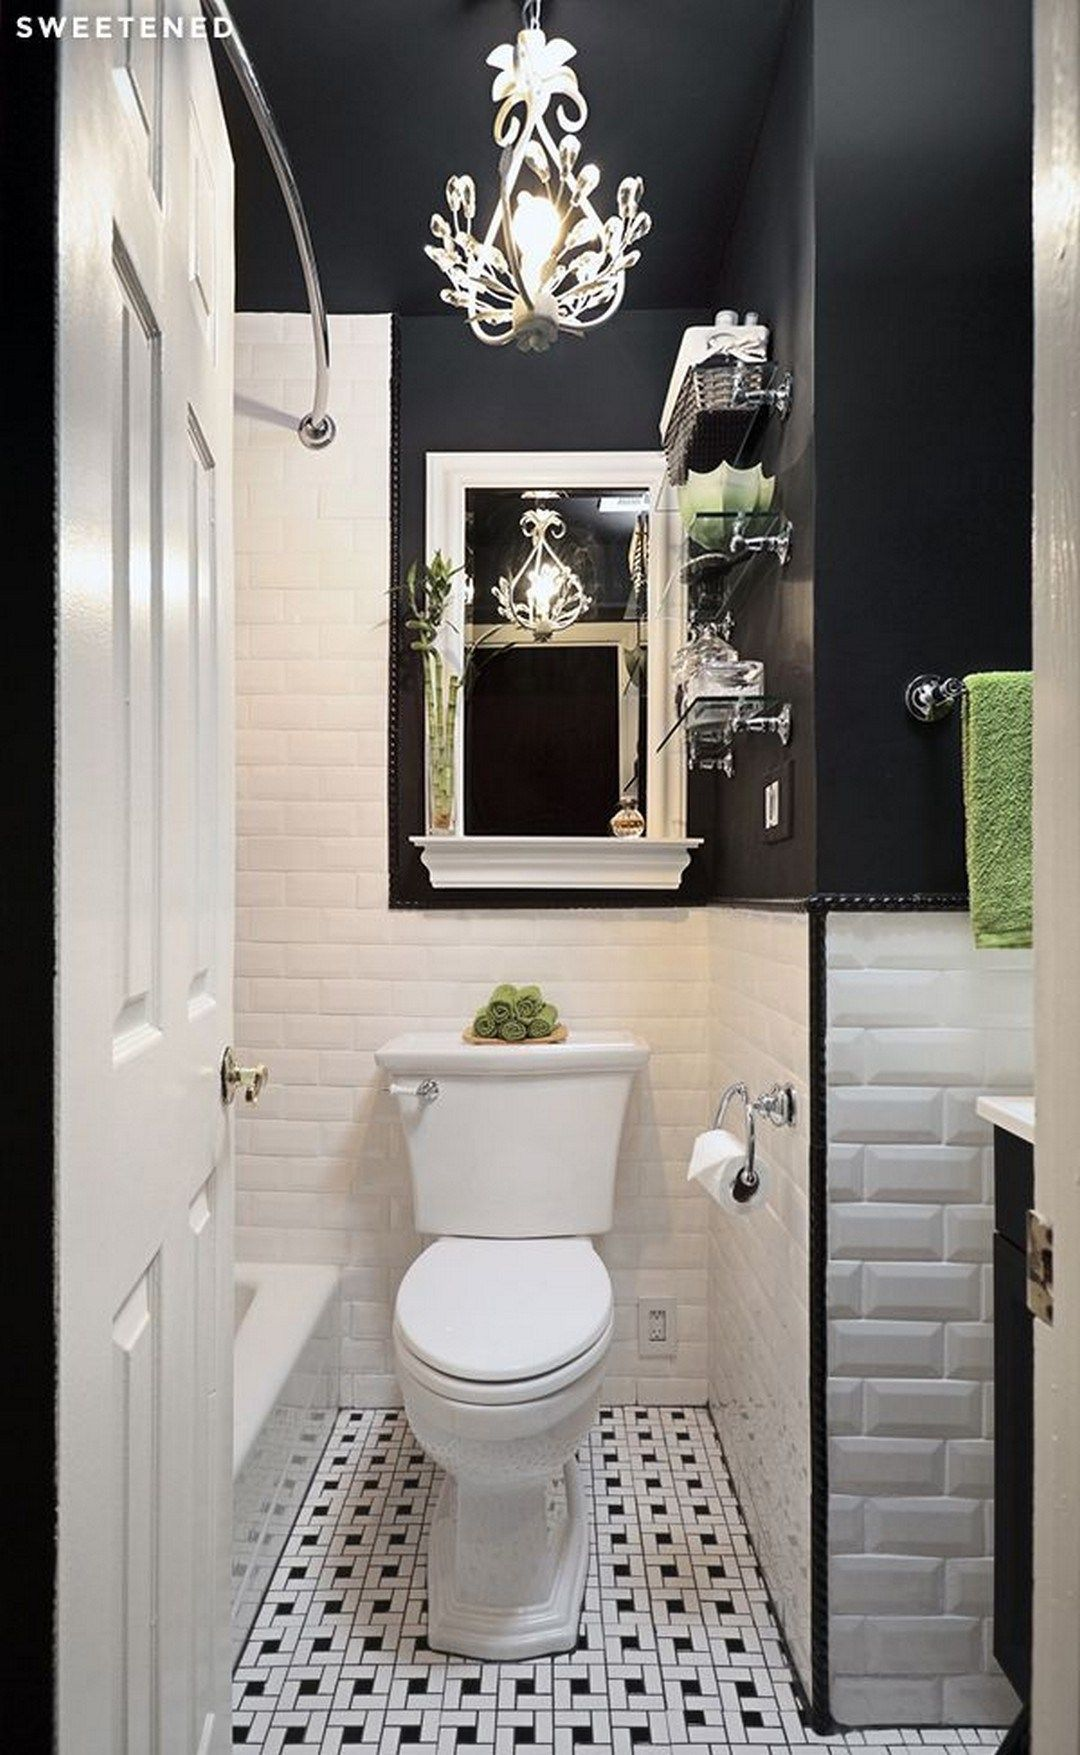 Get Inspired with 20 Luxury Black and White Bathroom ...